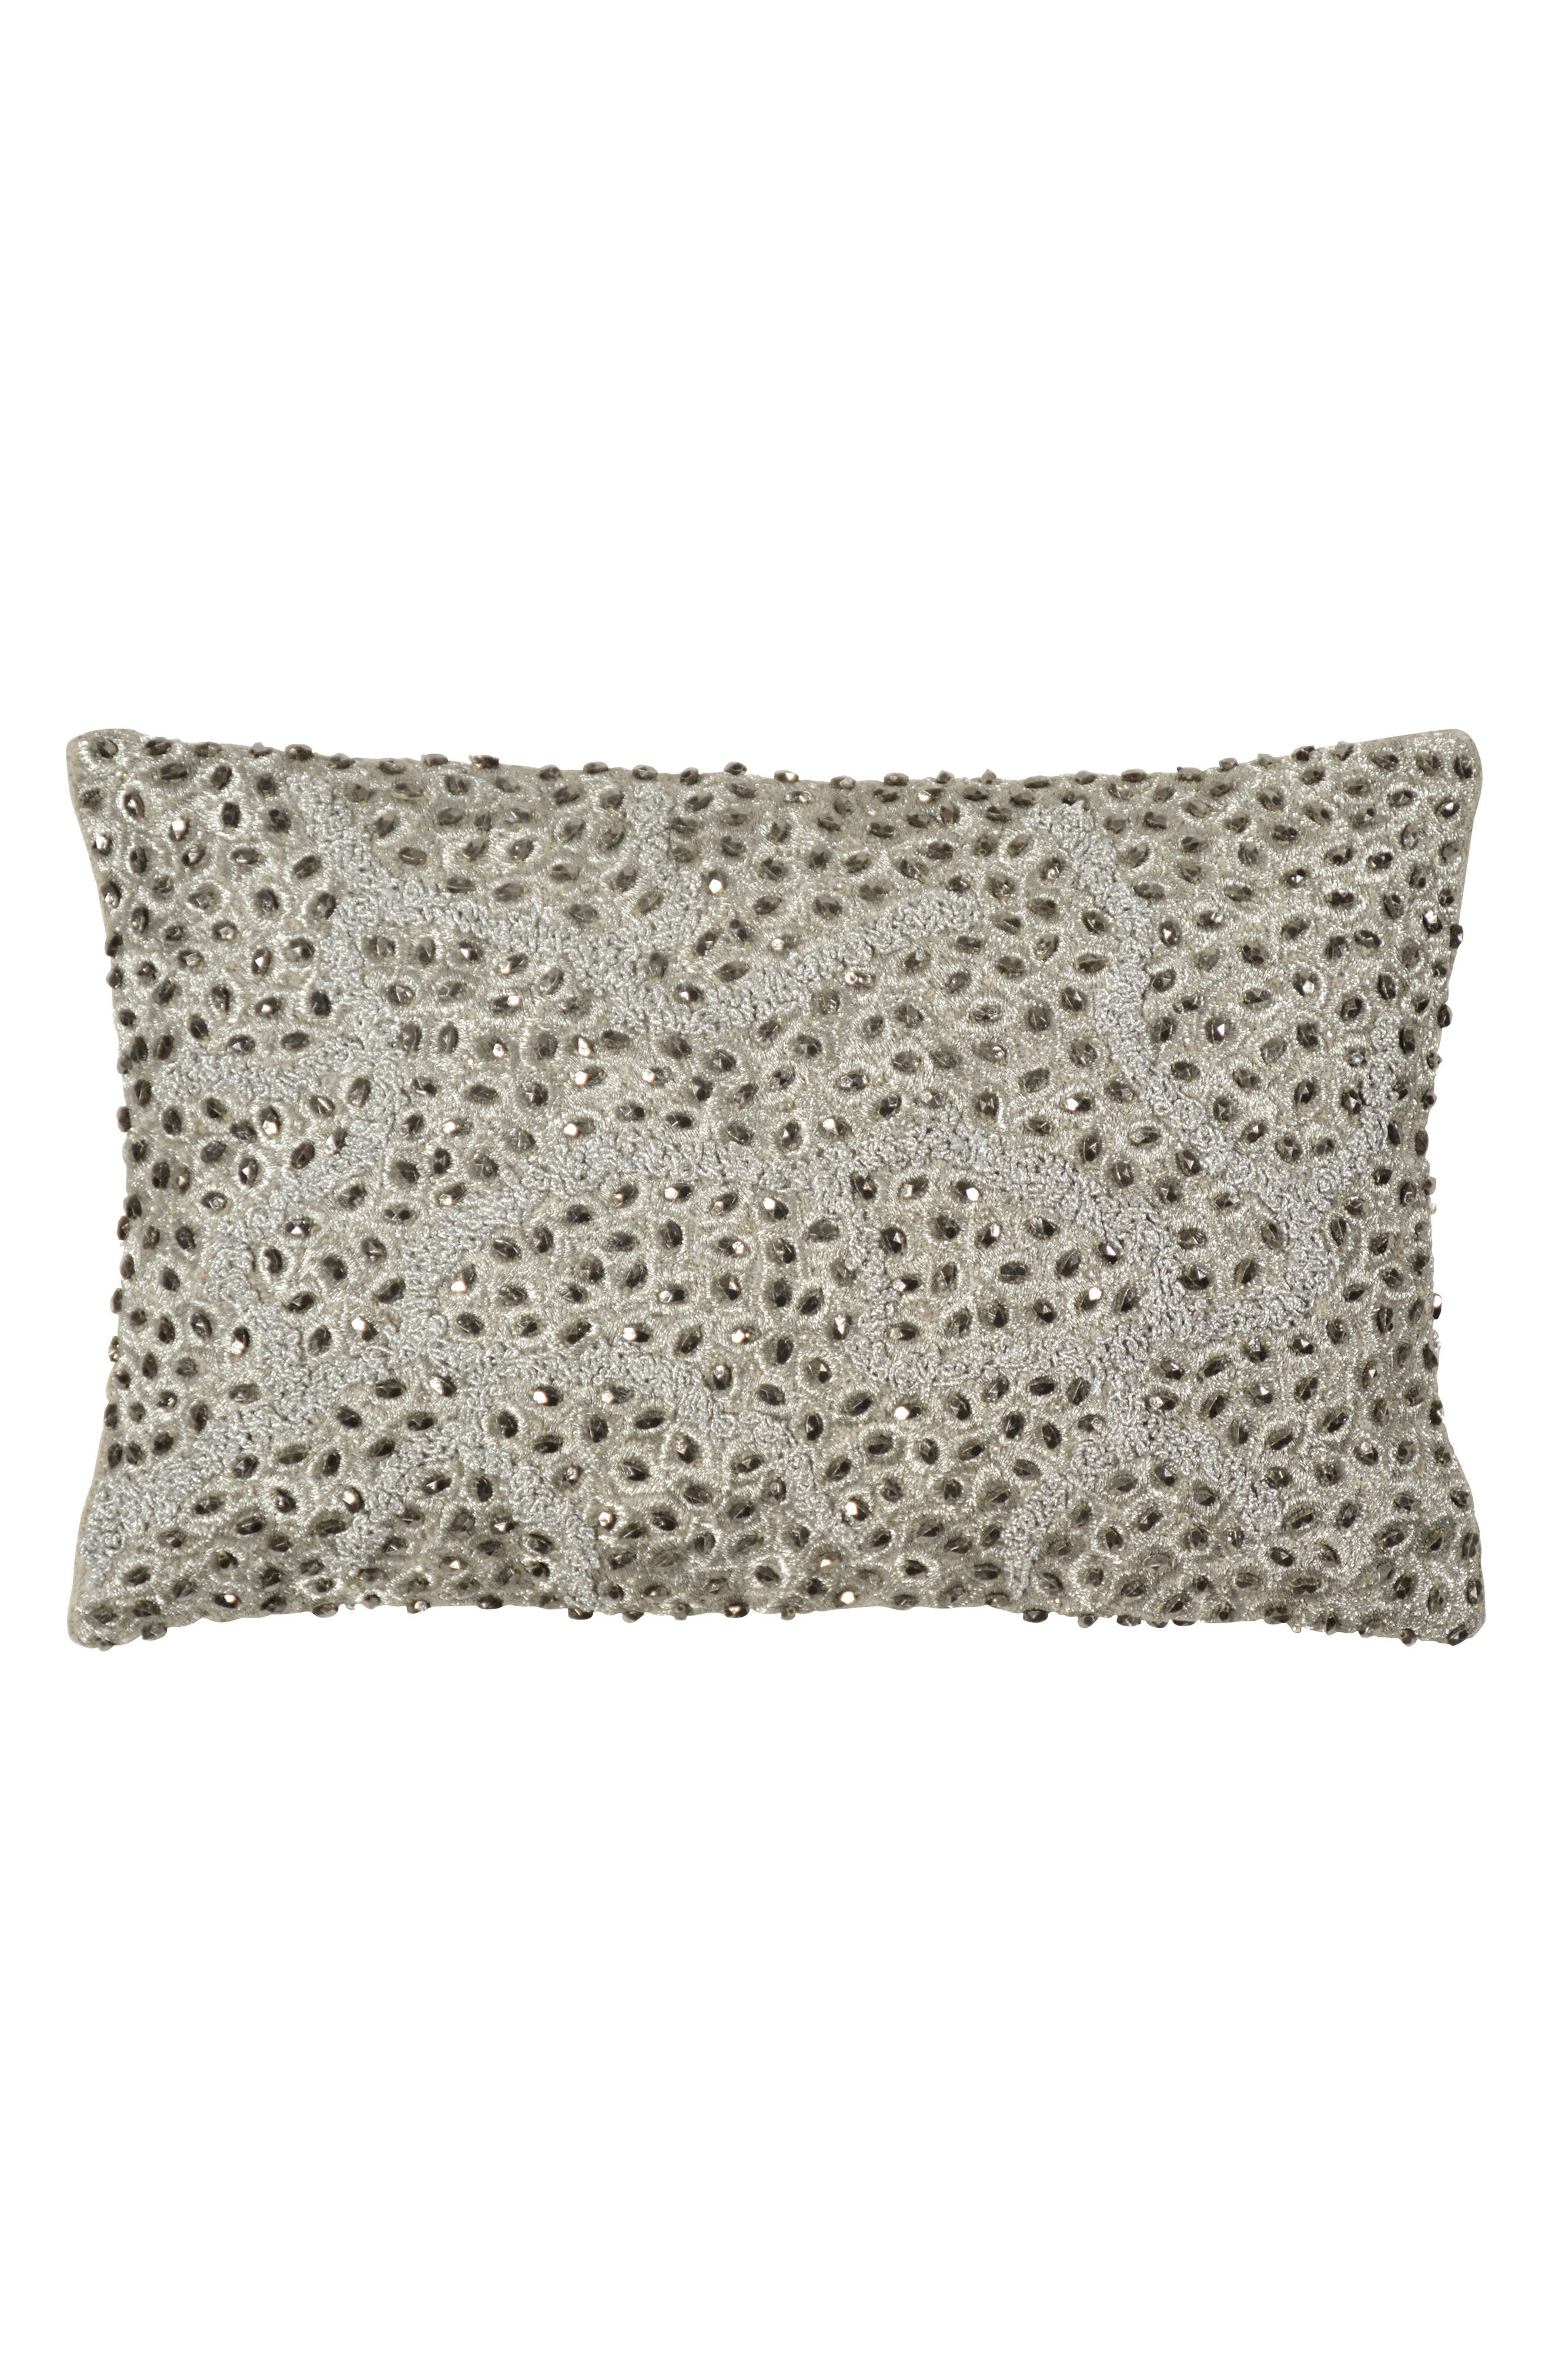 Micahel Aram Pomegranate Beaded Accent Pillow,                             Main thumbnail 1, color,                             040